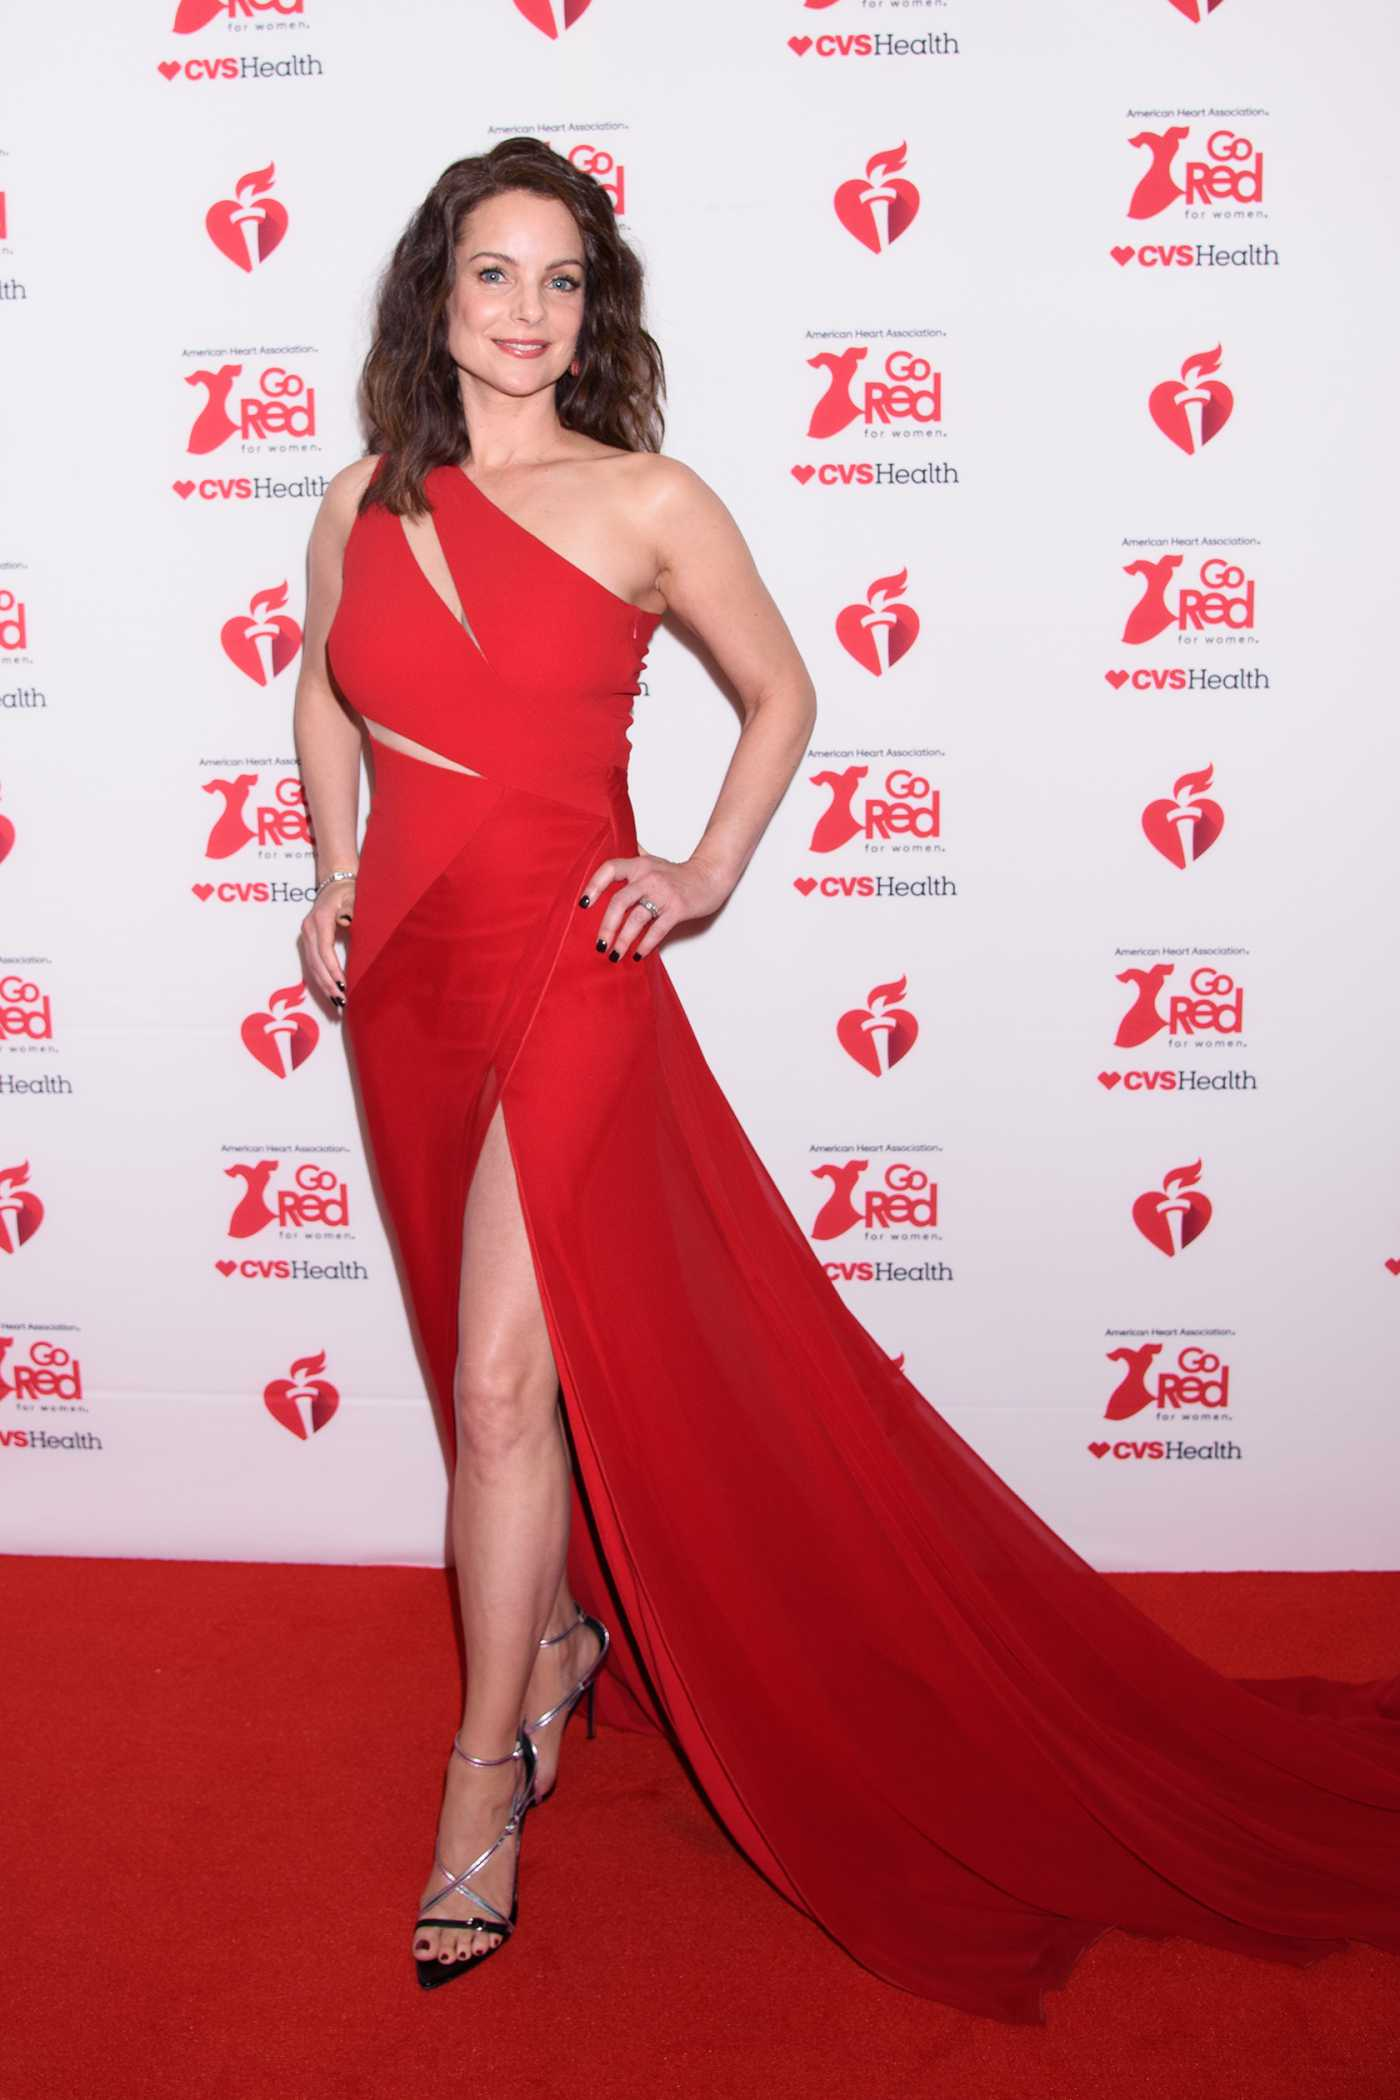 Kimberly Williams-Paisley Attends the American Red Heart Association's Go Red for Women Red Dress Collection in New York 02/05/2020